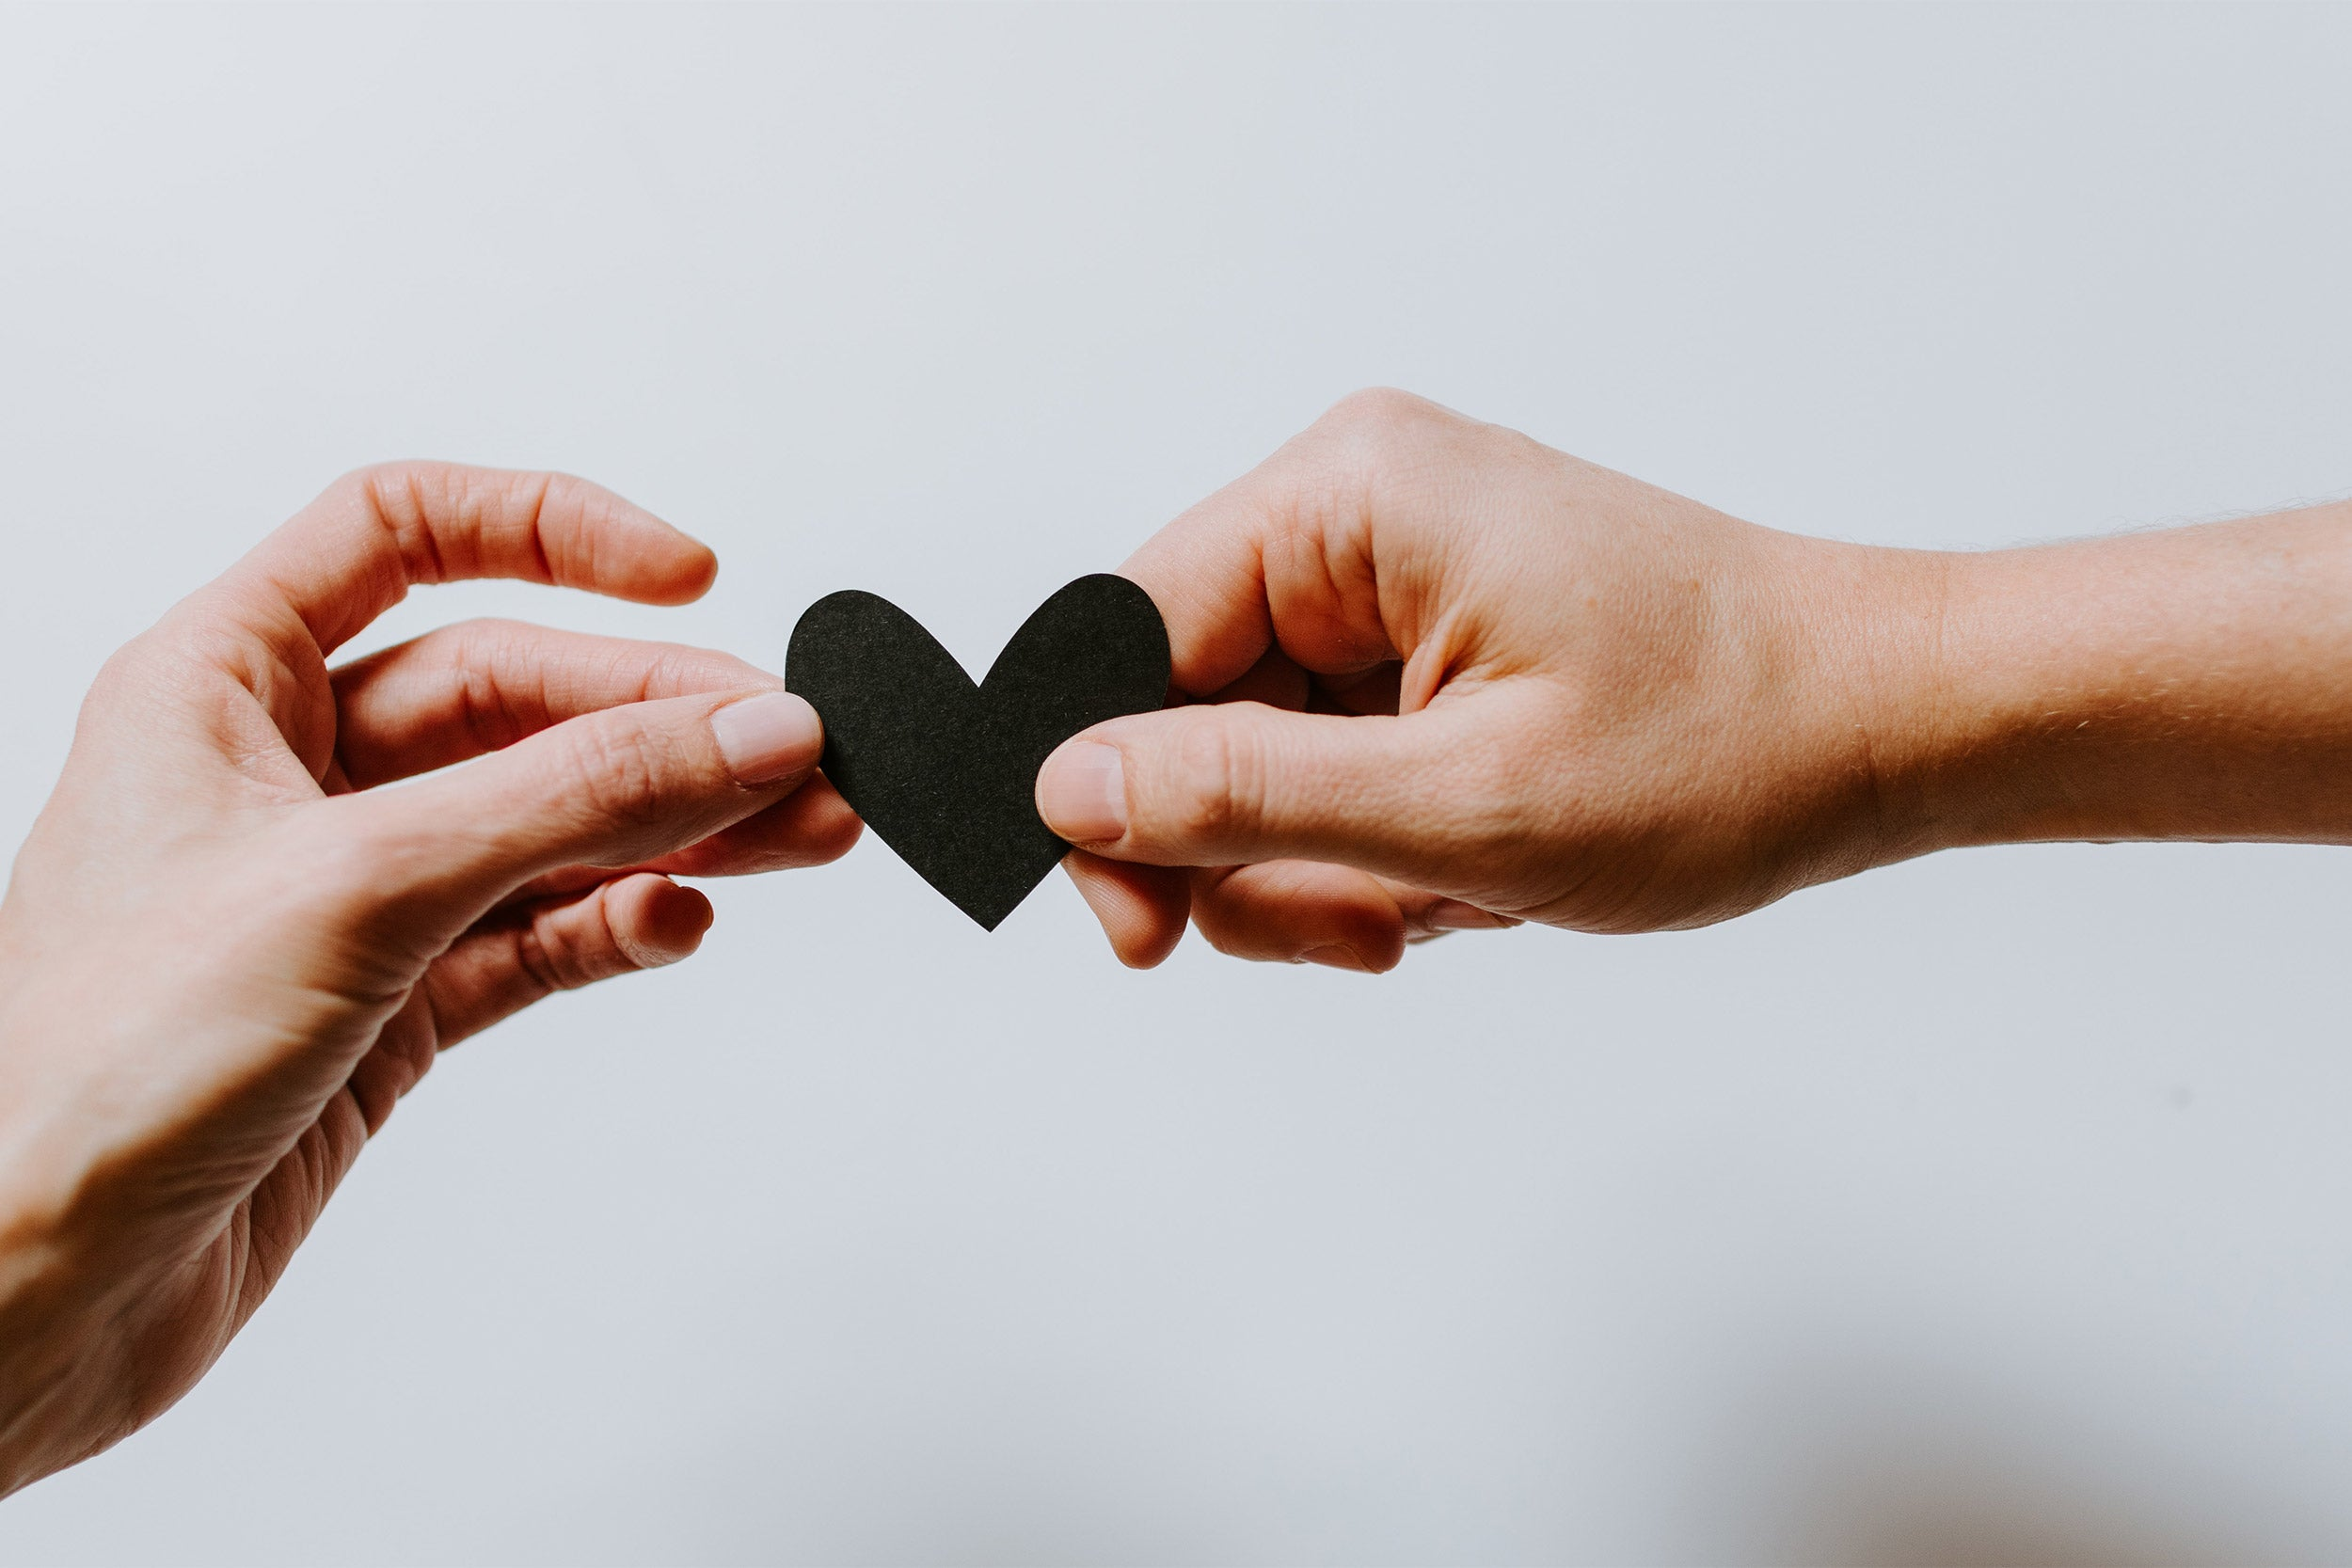 Two hands holding a single paper heart.